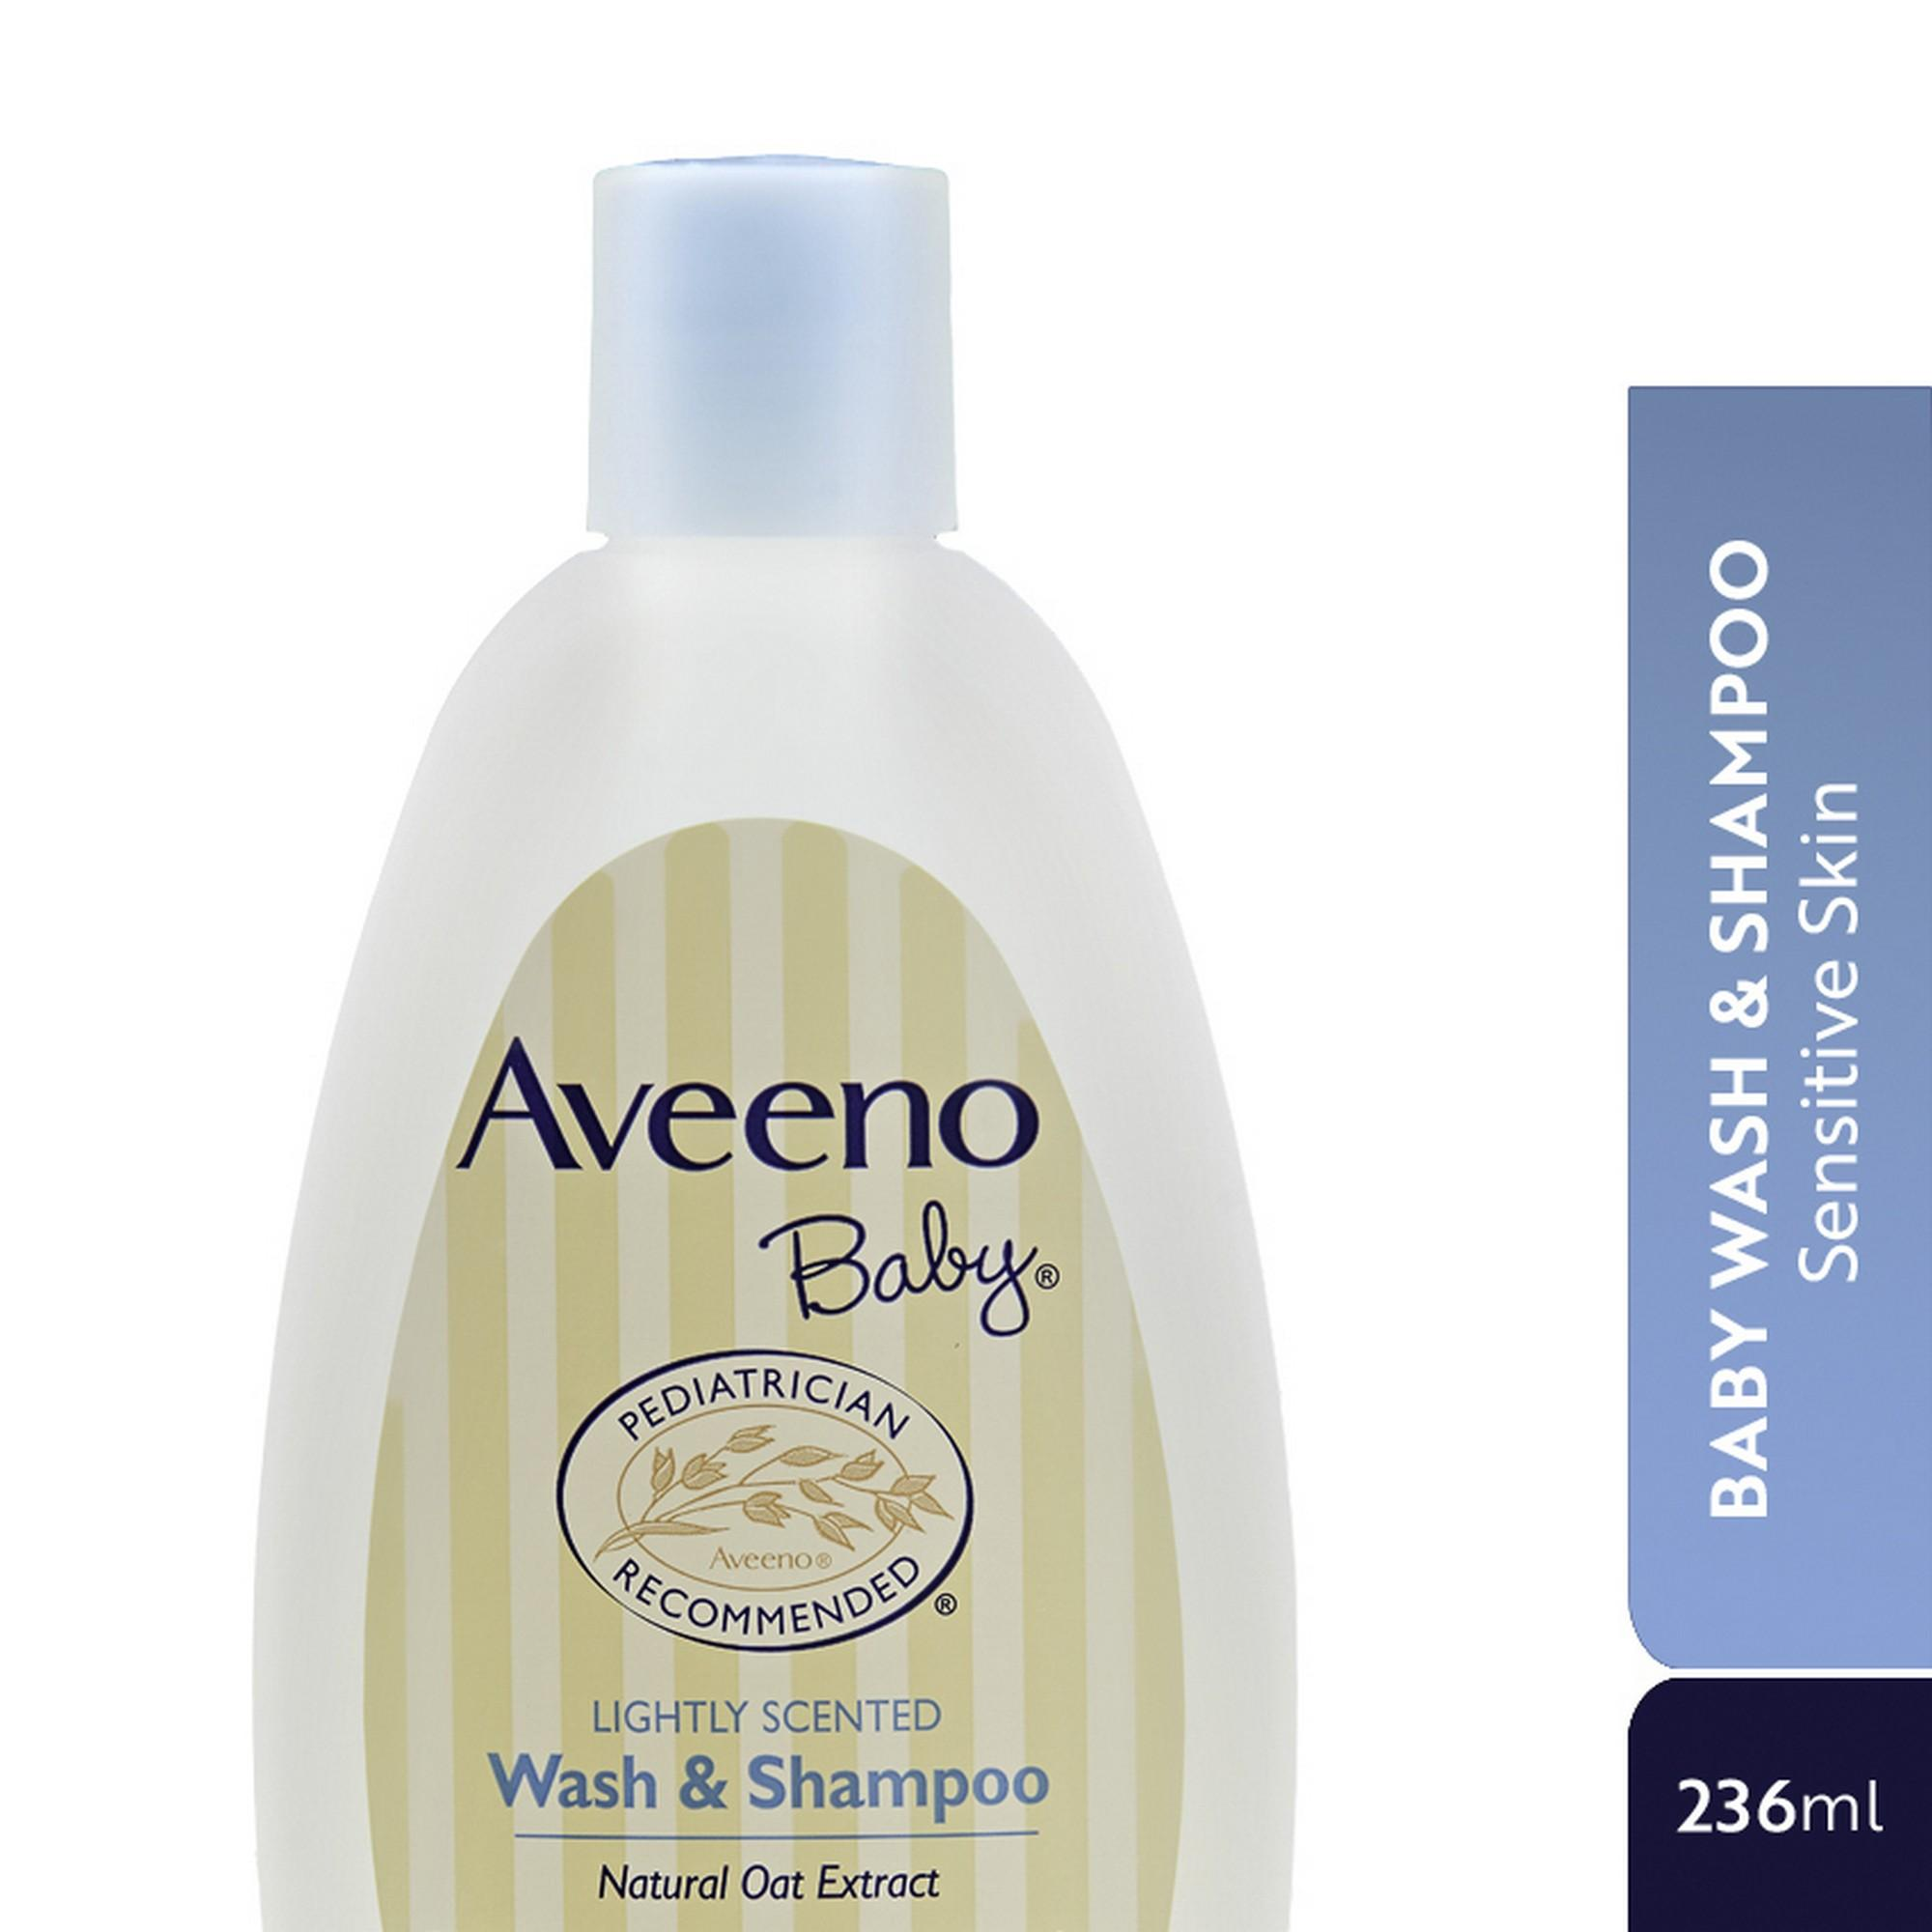 Baby Shampoos For Sale No Tears Shampoo Online Brands Prices Purebaby Fruity 230 Ml Aveeno Daily Wash 236ml